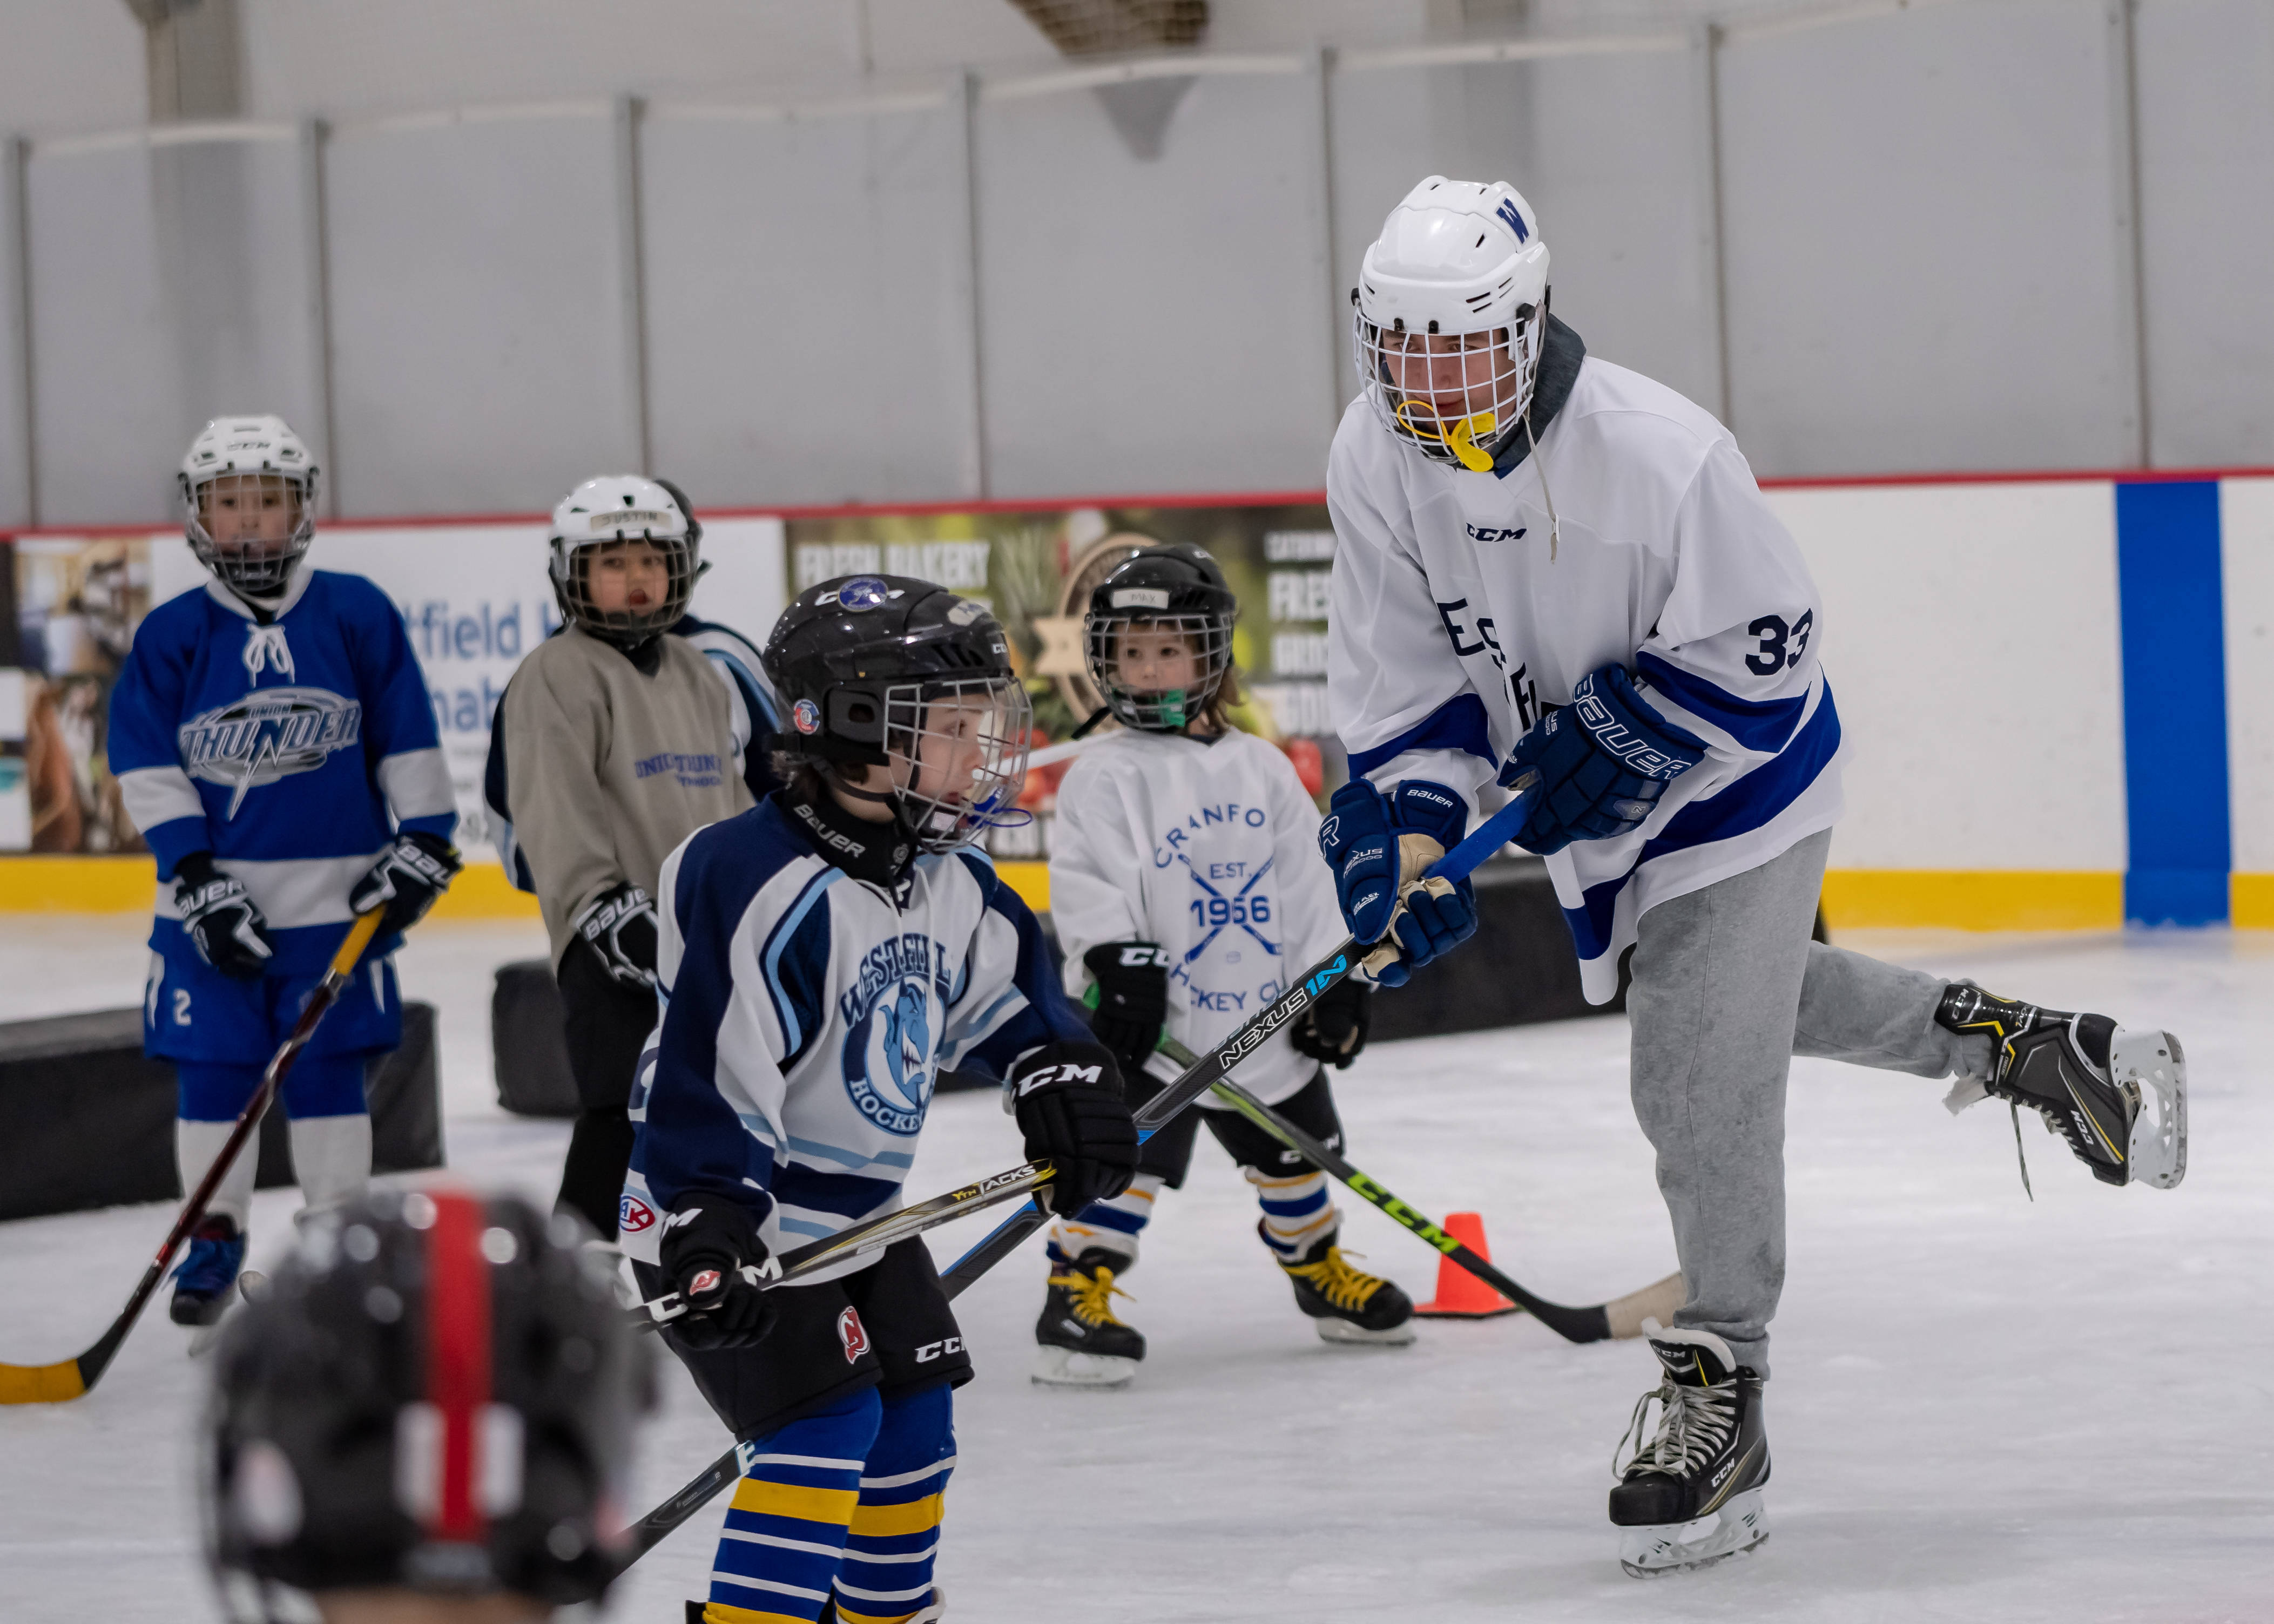 westfield boys hockey team lives for hockey with love for community